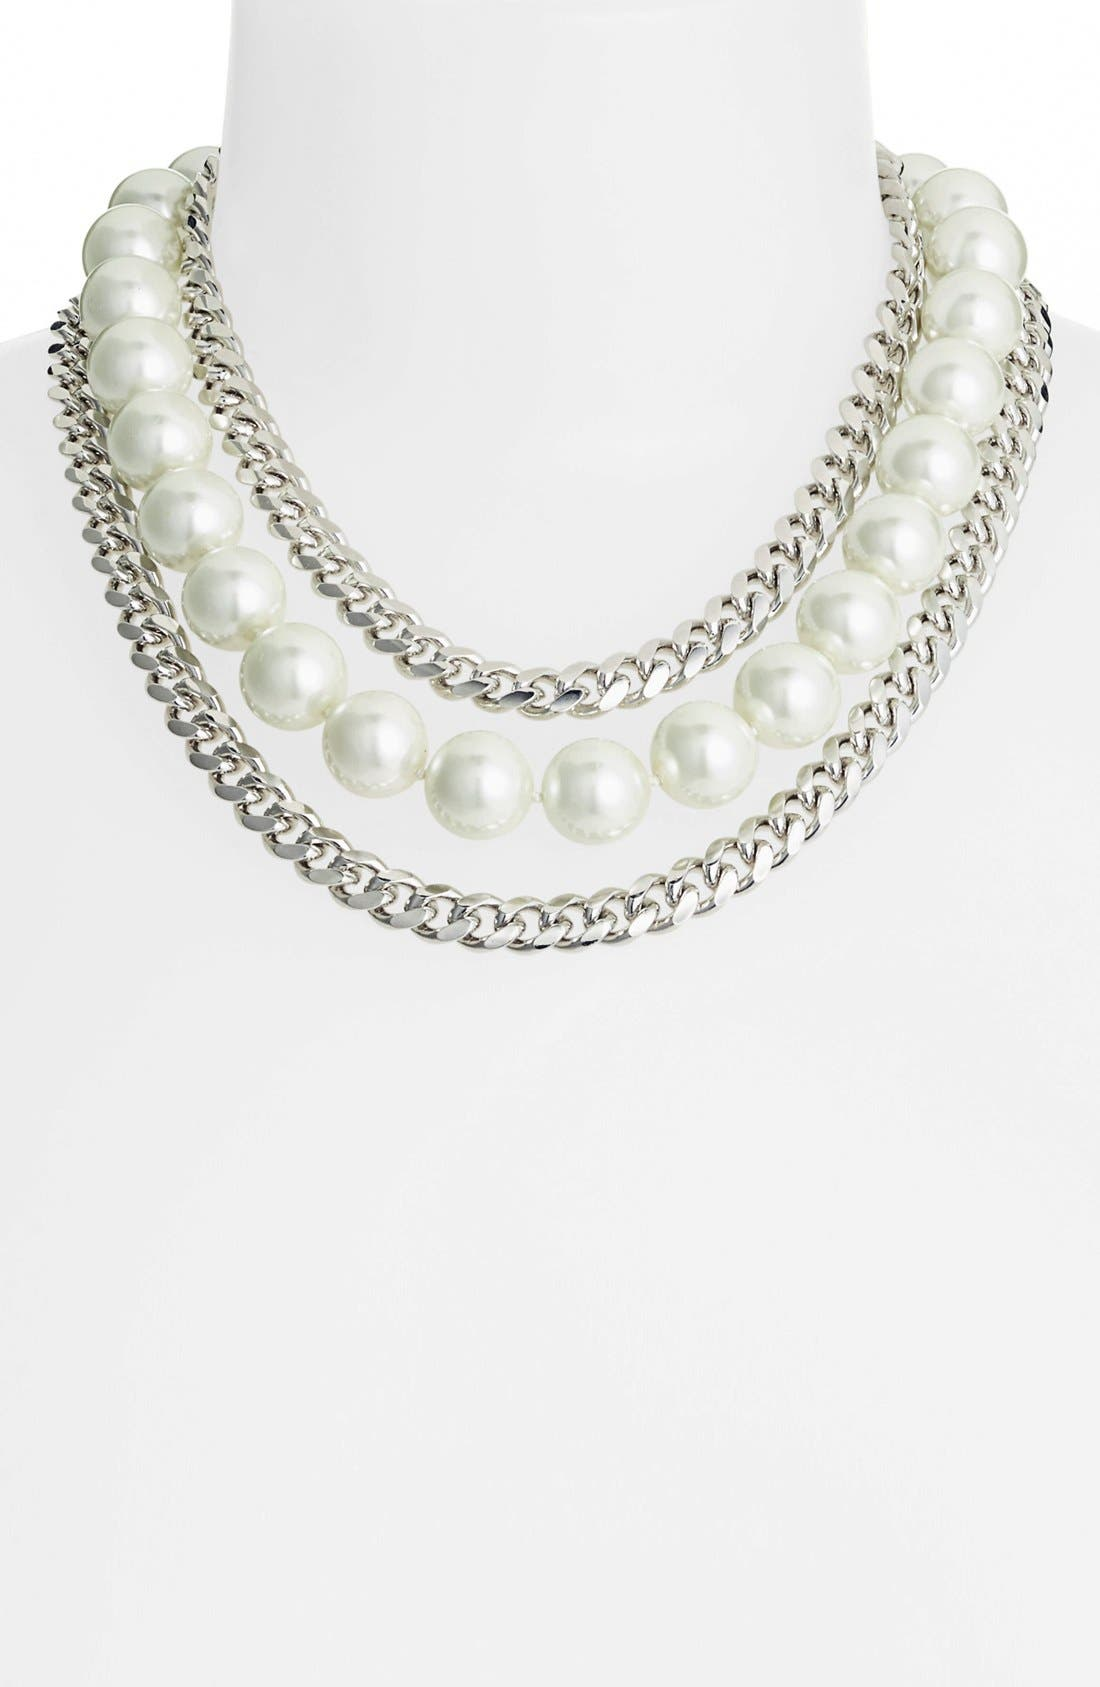 Main Image - Givenchy Faux Pearl & Link Bib Necklace (Nordstrom Exclusive)